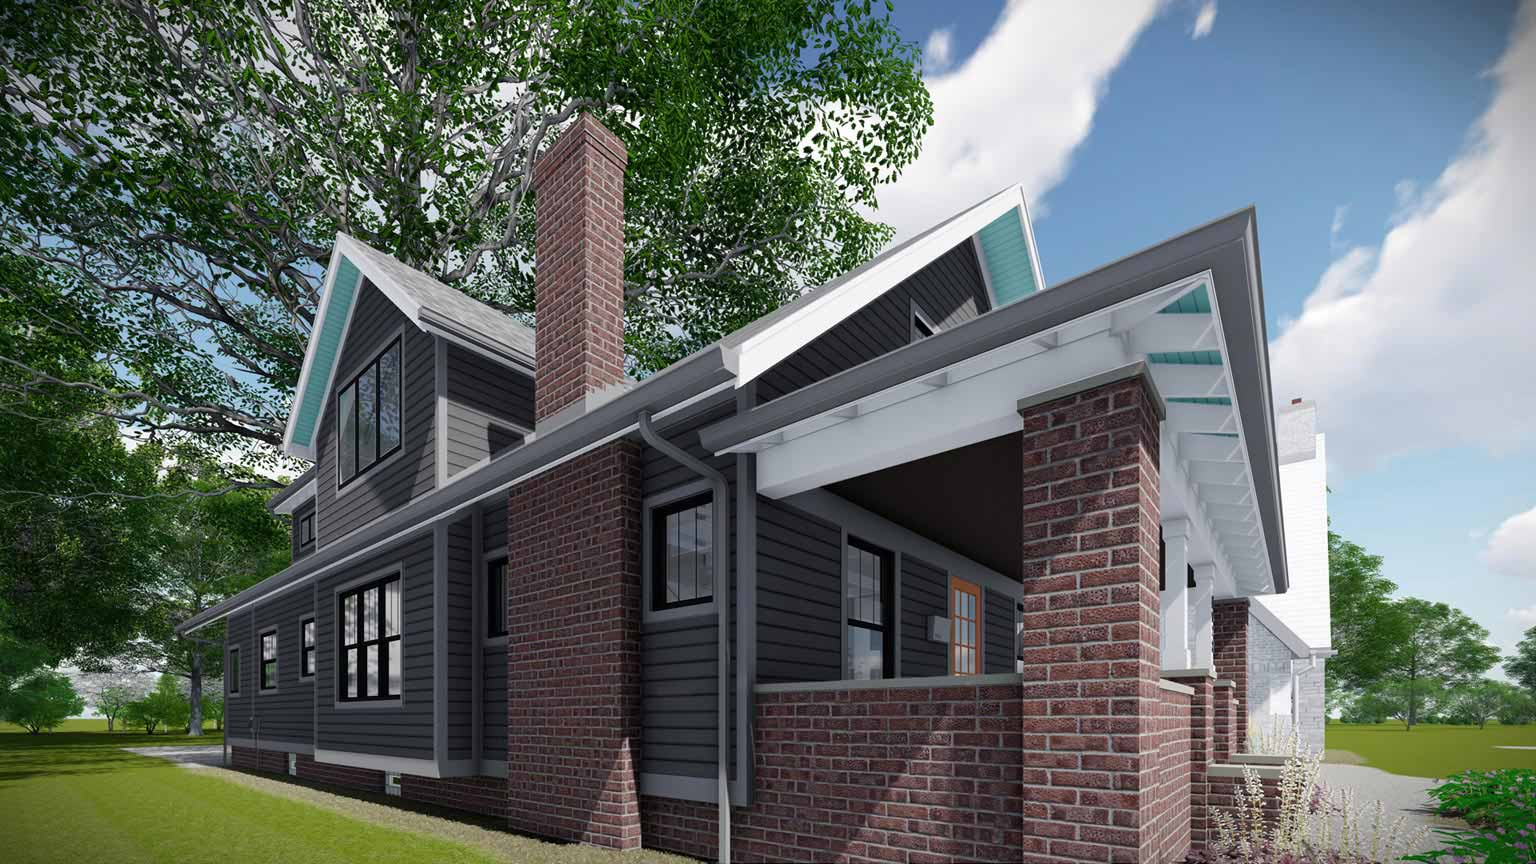 Broad Ripple Modern Craftsman Renovation - Christopher Short, Architect, Indianapolis, HAUS Architecture